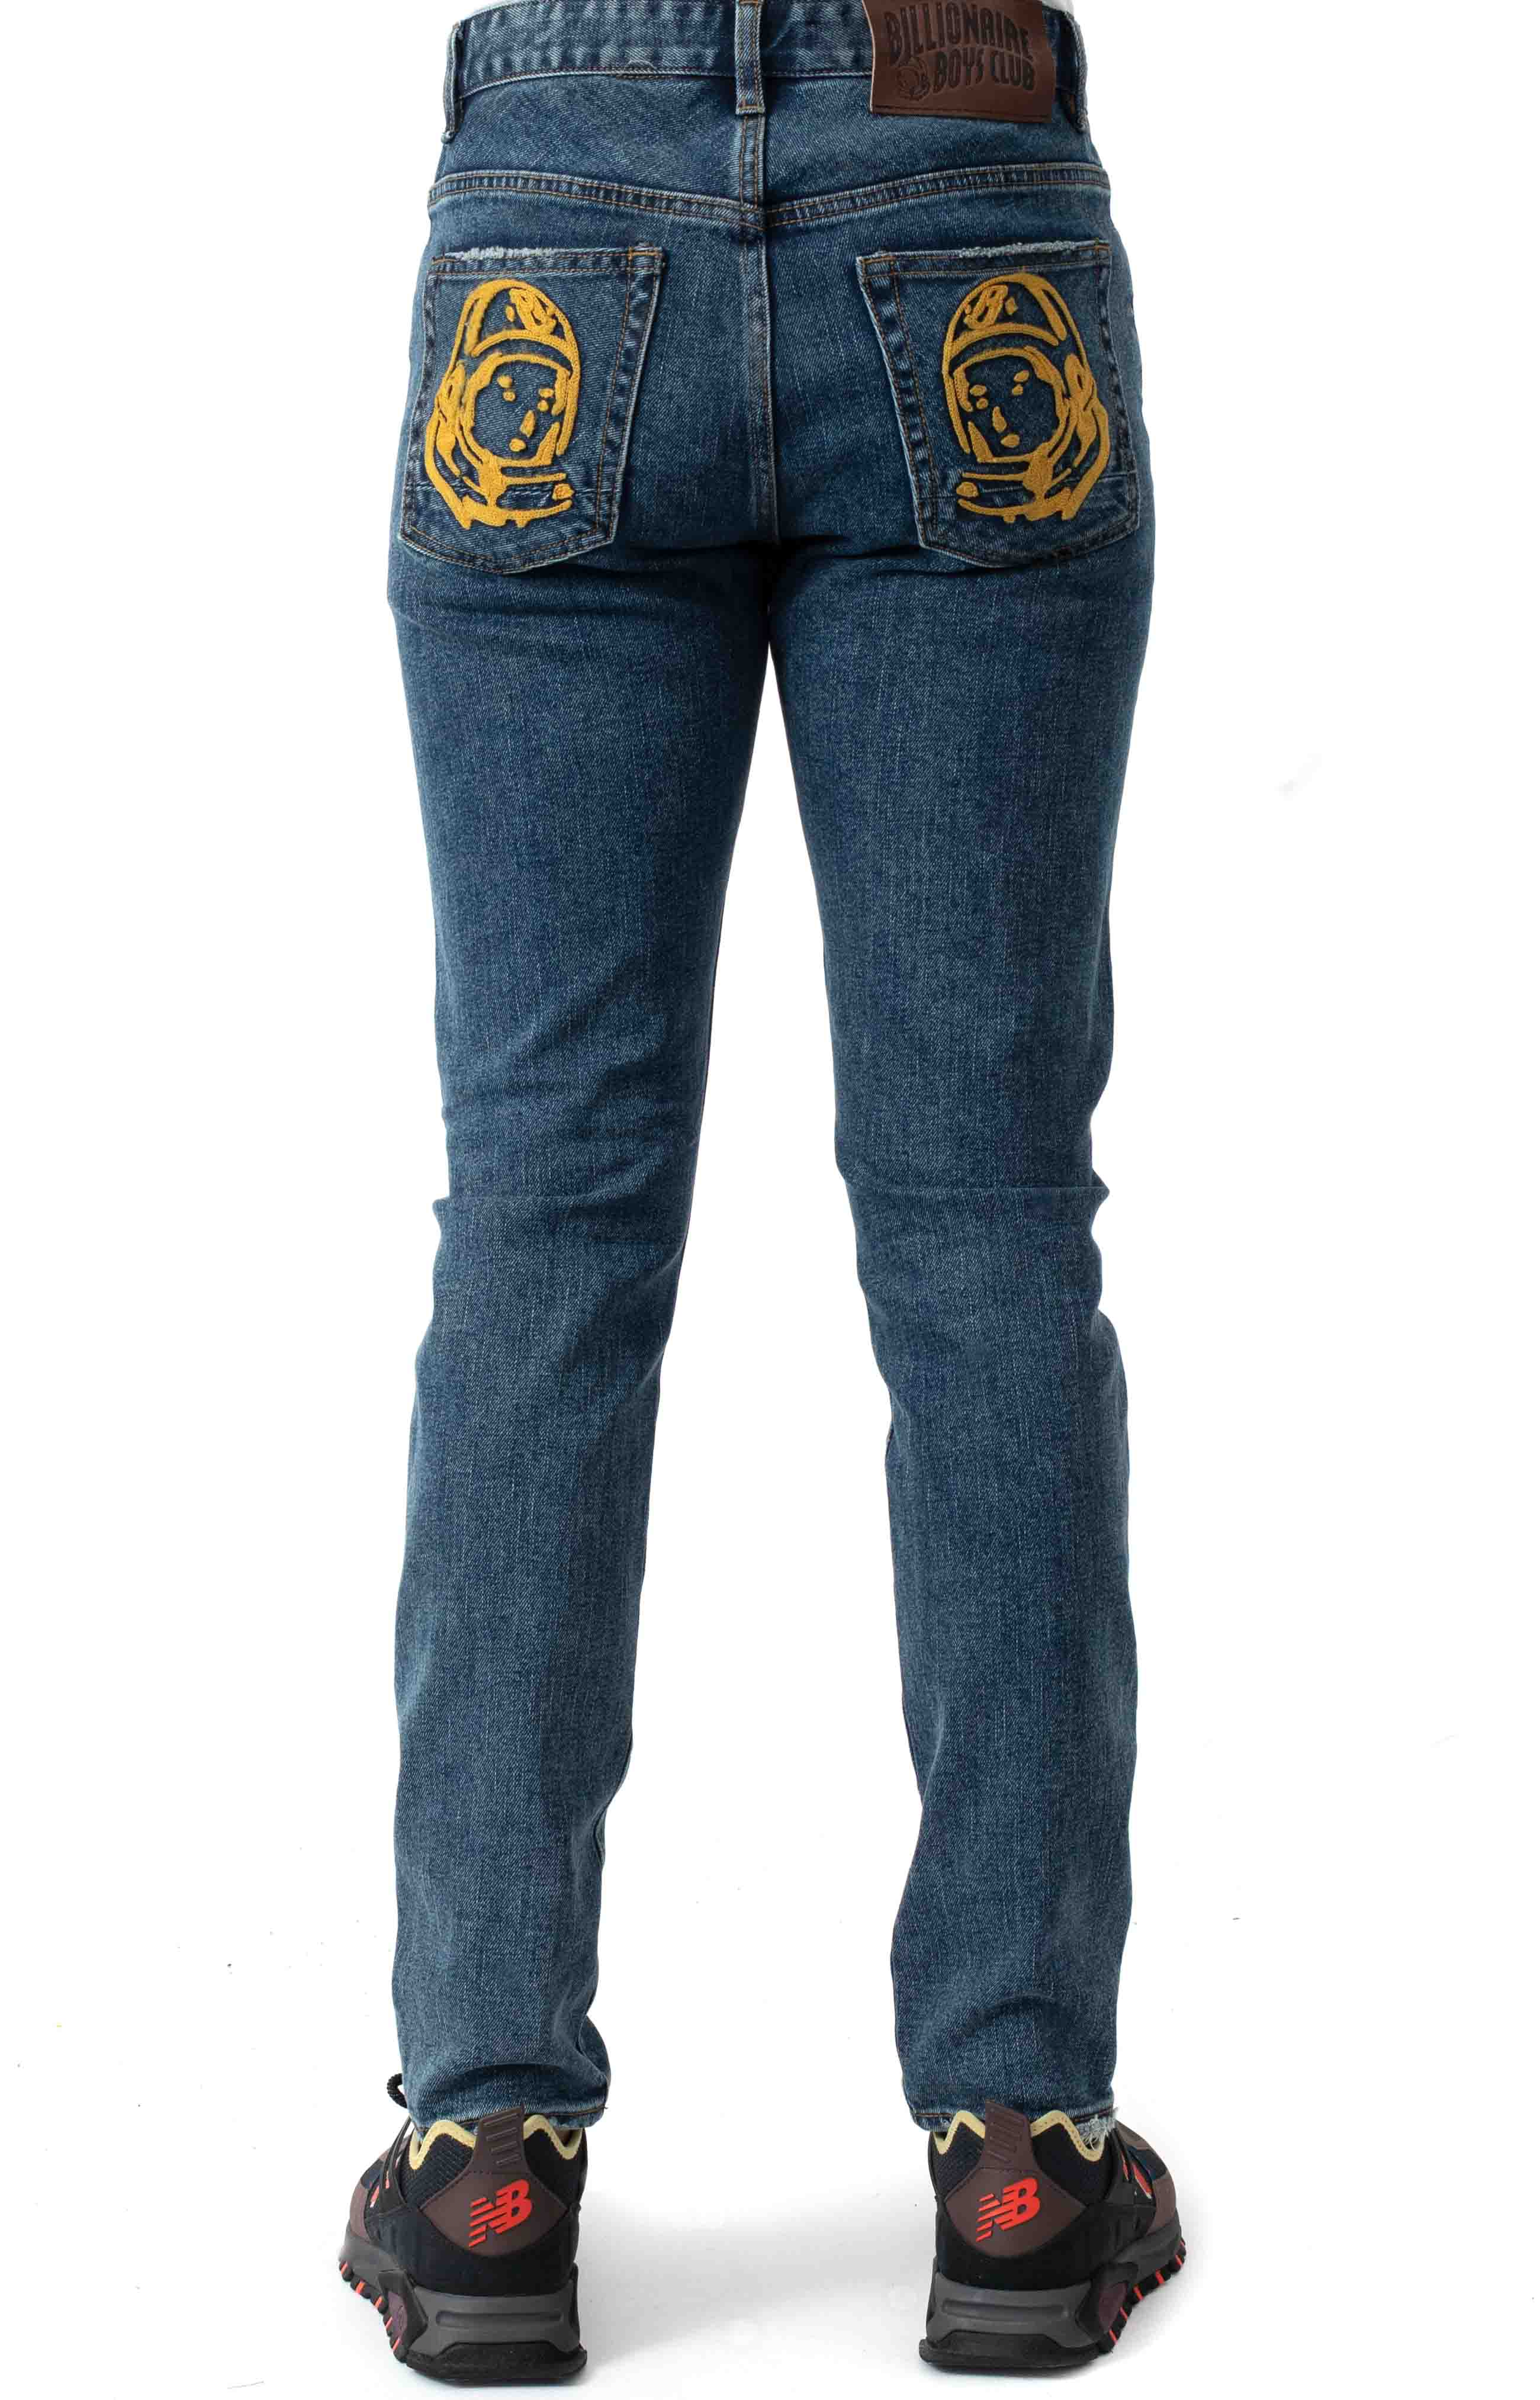 BB Orion Jeans - Solar Flare  3